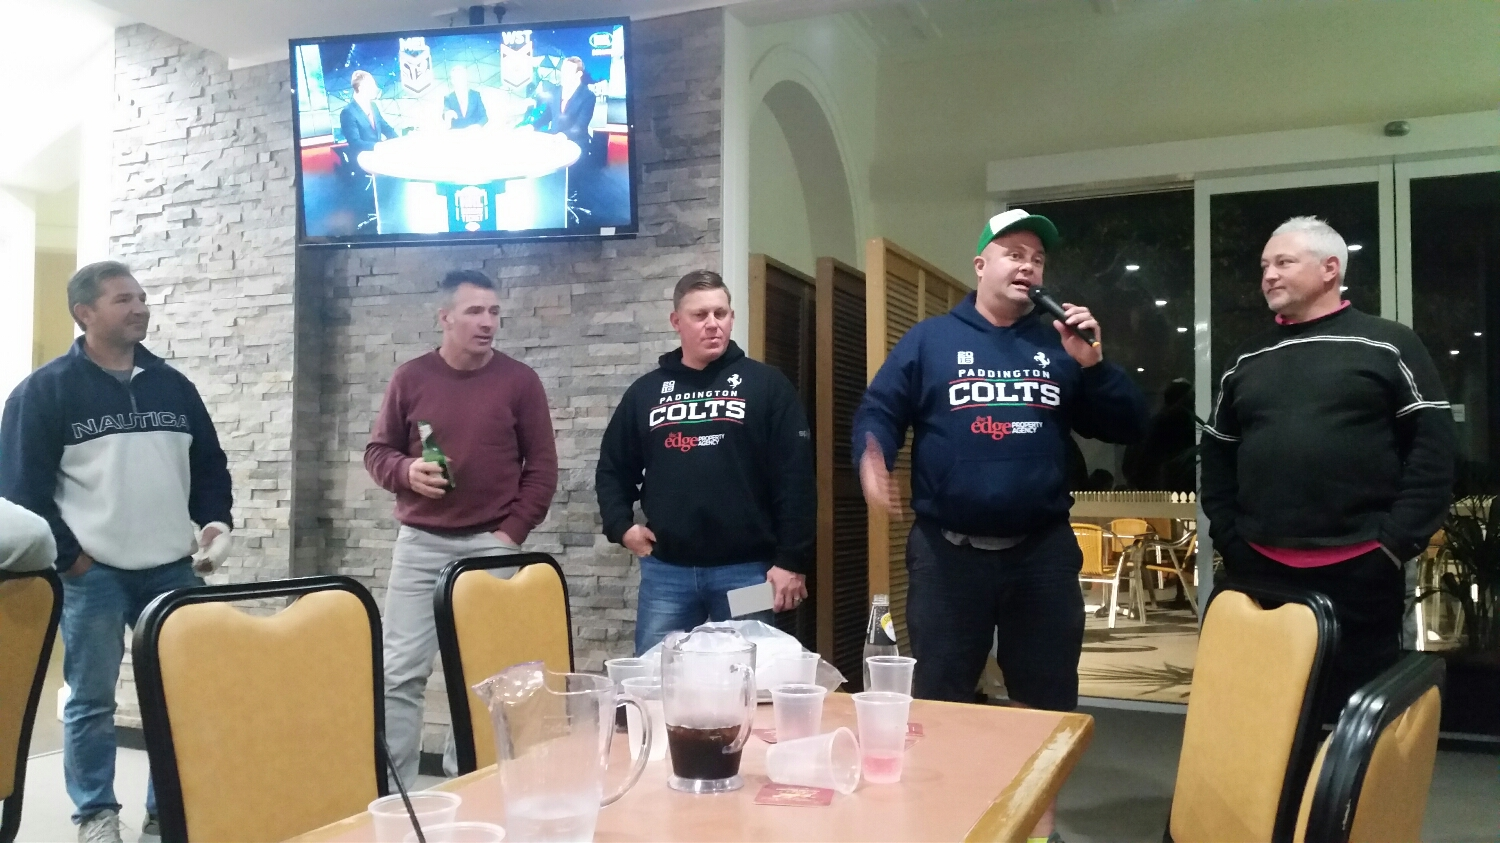 Inspiring speech from some of the older men of the colts 👍